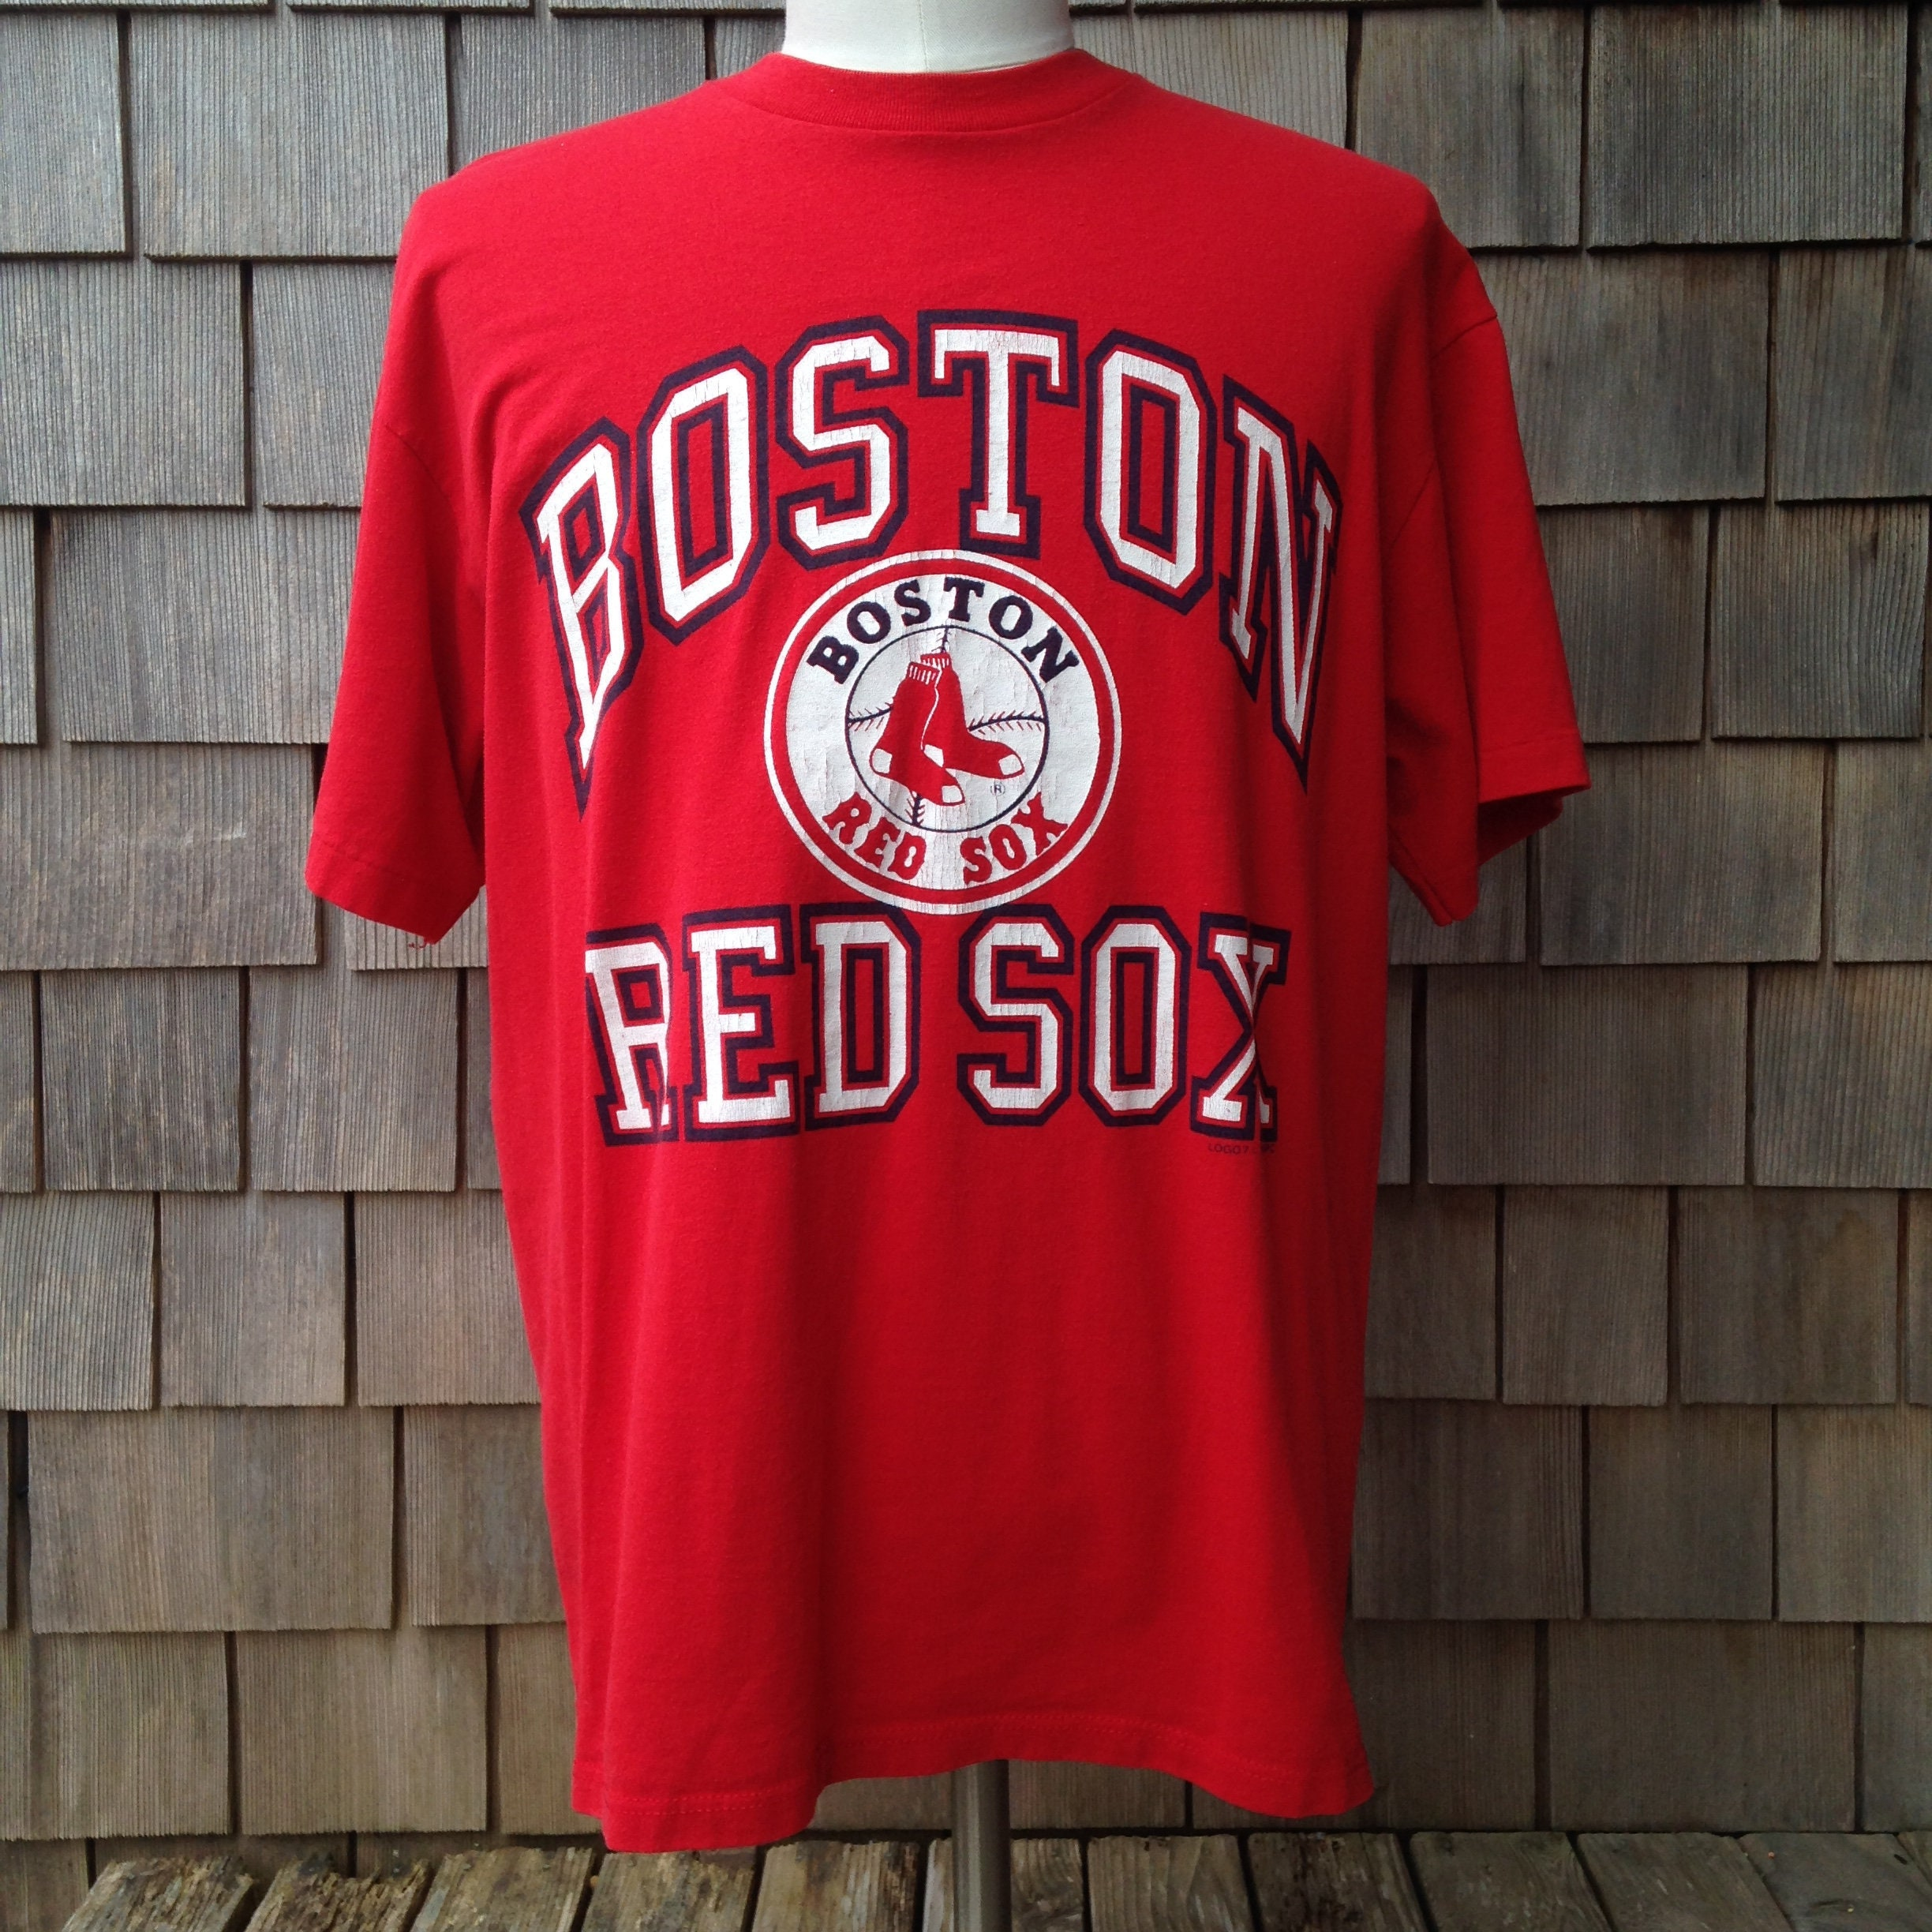 d8de7bf11 Boston Red Sox T Shirts Cheap - Nils Stucki Kieferorthopäde